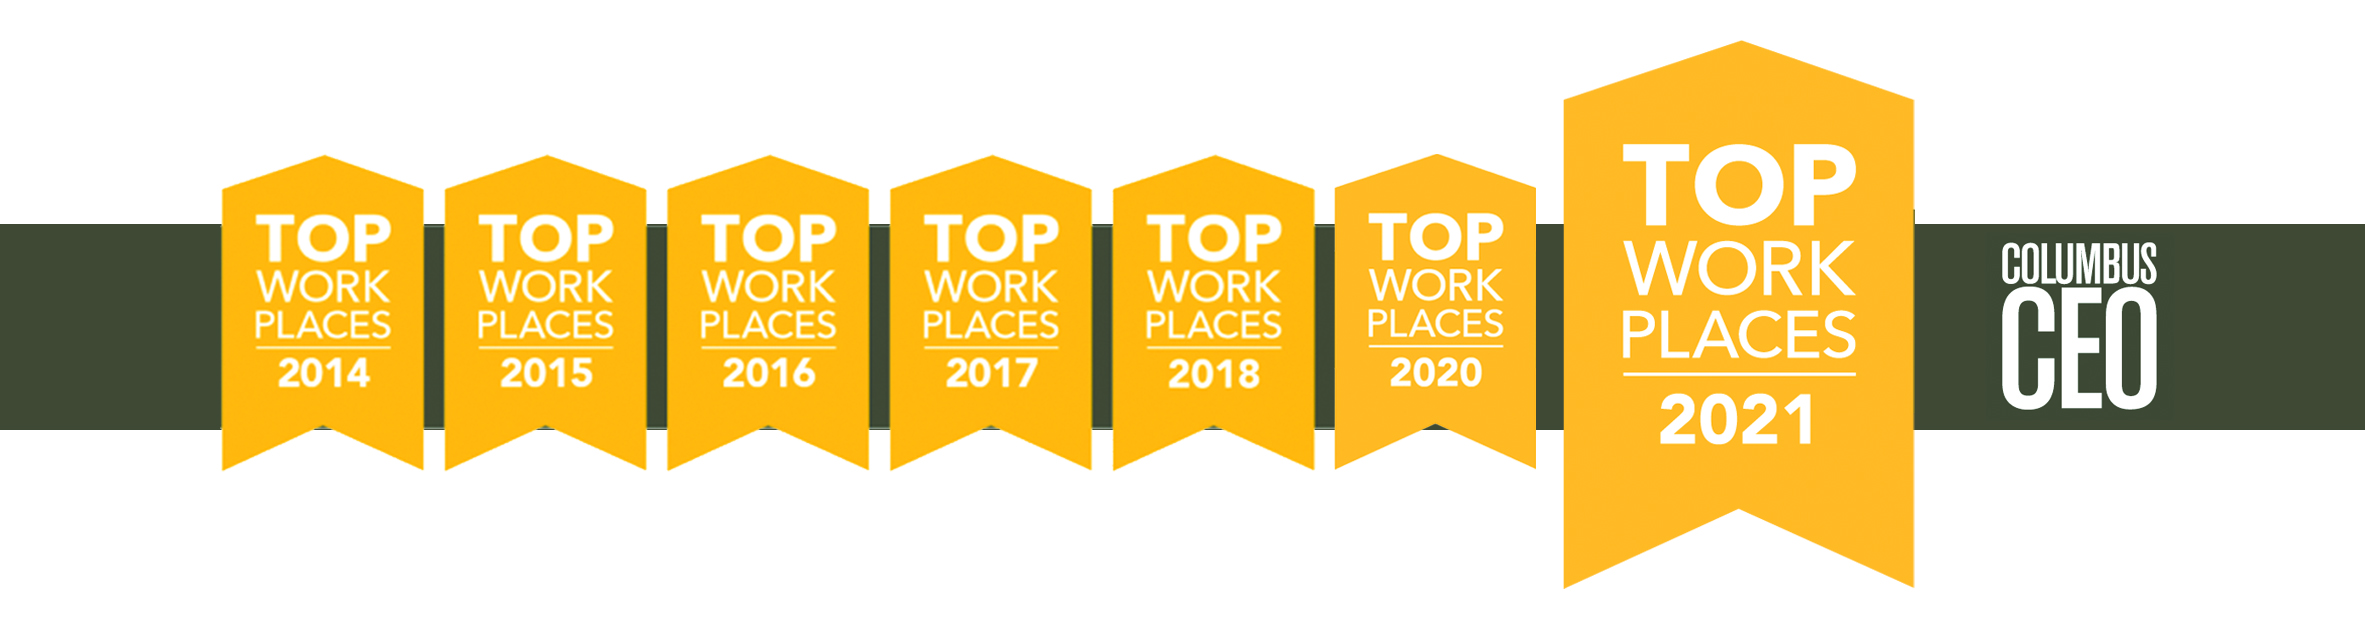 Columbus CEO Best Places To Work 2021